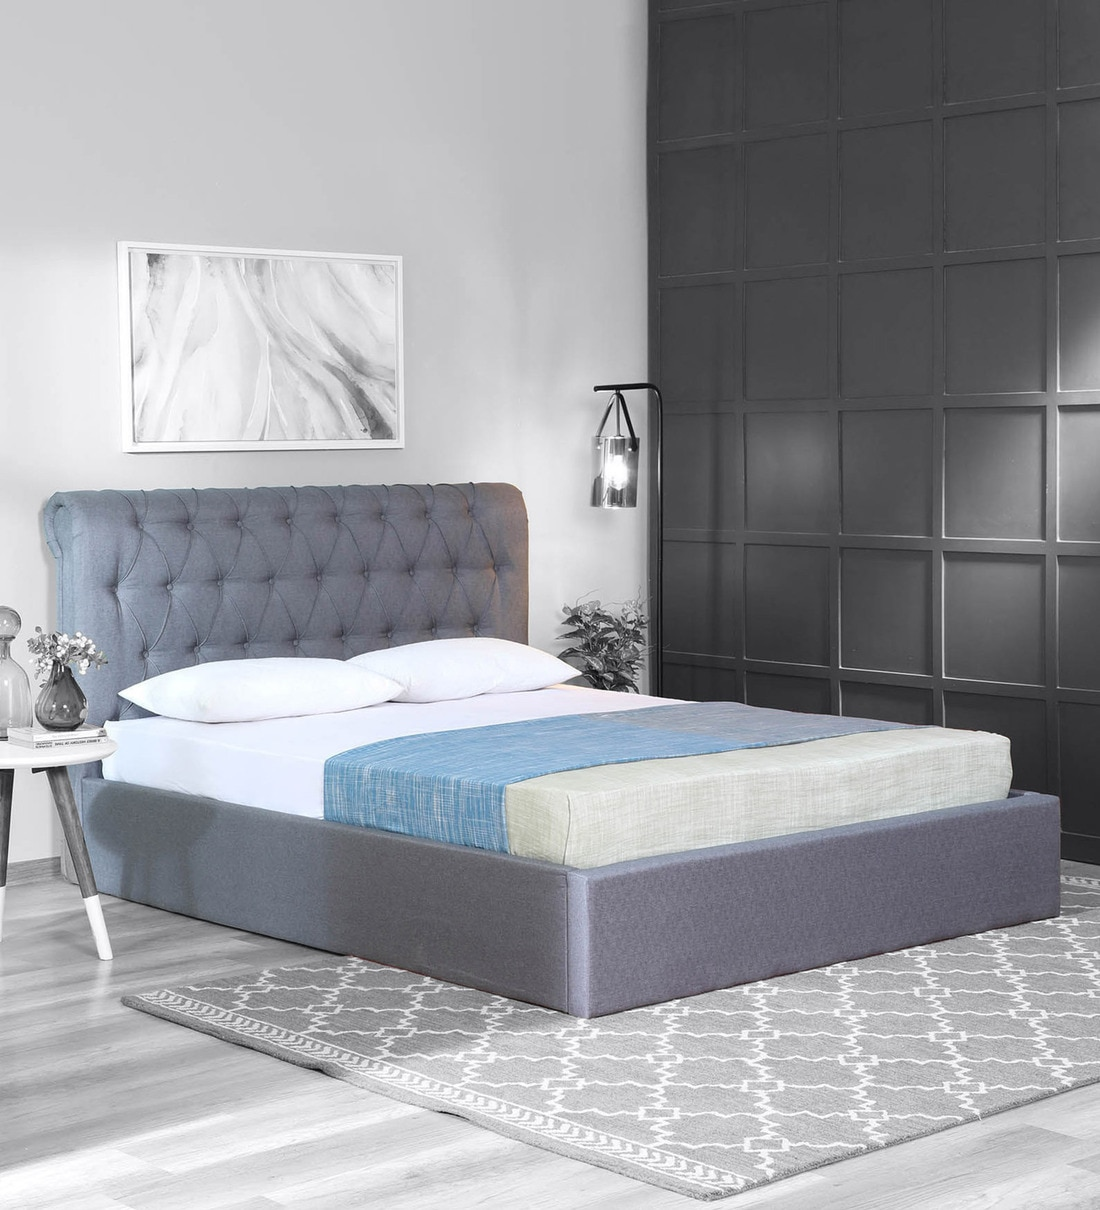 Buy Brayan Upholstered Queen Size Bed With Hydraulic Storage In Light Grey Colour Casacraft By Pepperfry Online Queen Size Upholstered Beds Beds Furniture Pepperfry Product